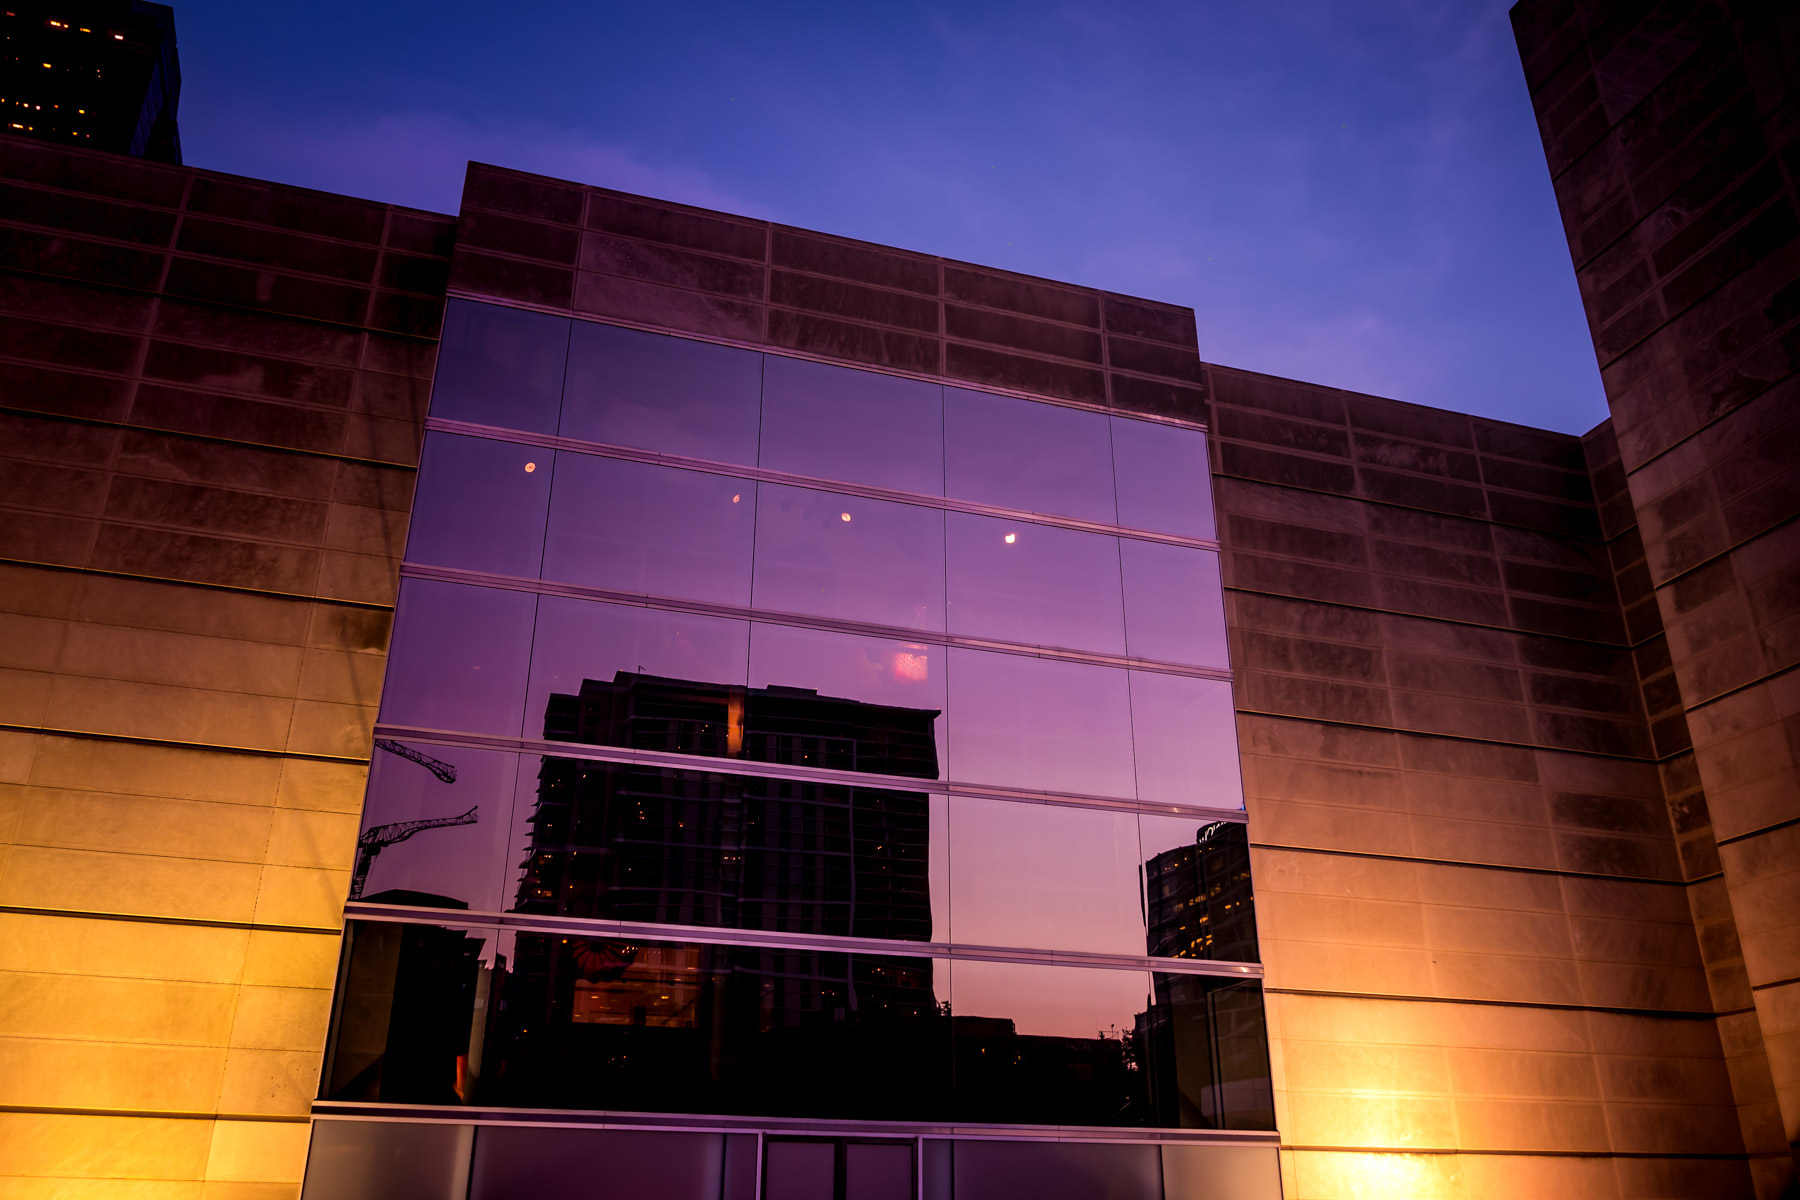 1900 McKinney is reflected in a huge multi-story window at the Dallas Museum of Art as the sun sets on North Texas.